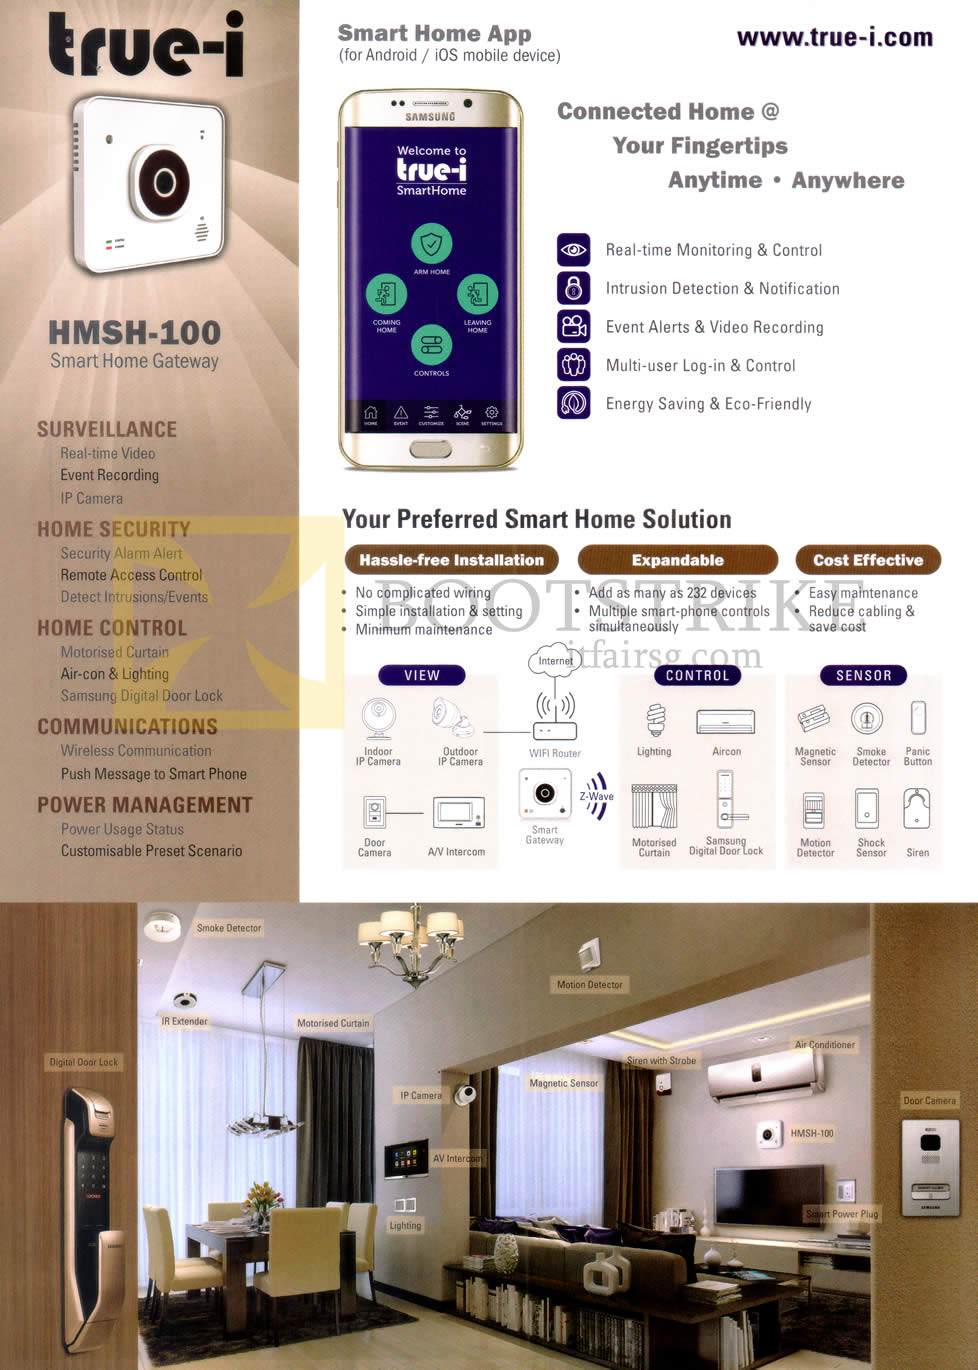 hanman true i hmsh 100 smart home gateway pc show 2016 price list brochure flyer image. Black Bedroom Furniture Sets. Home Design Ideas